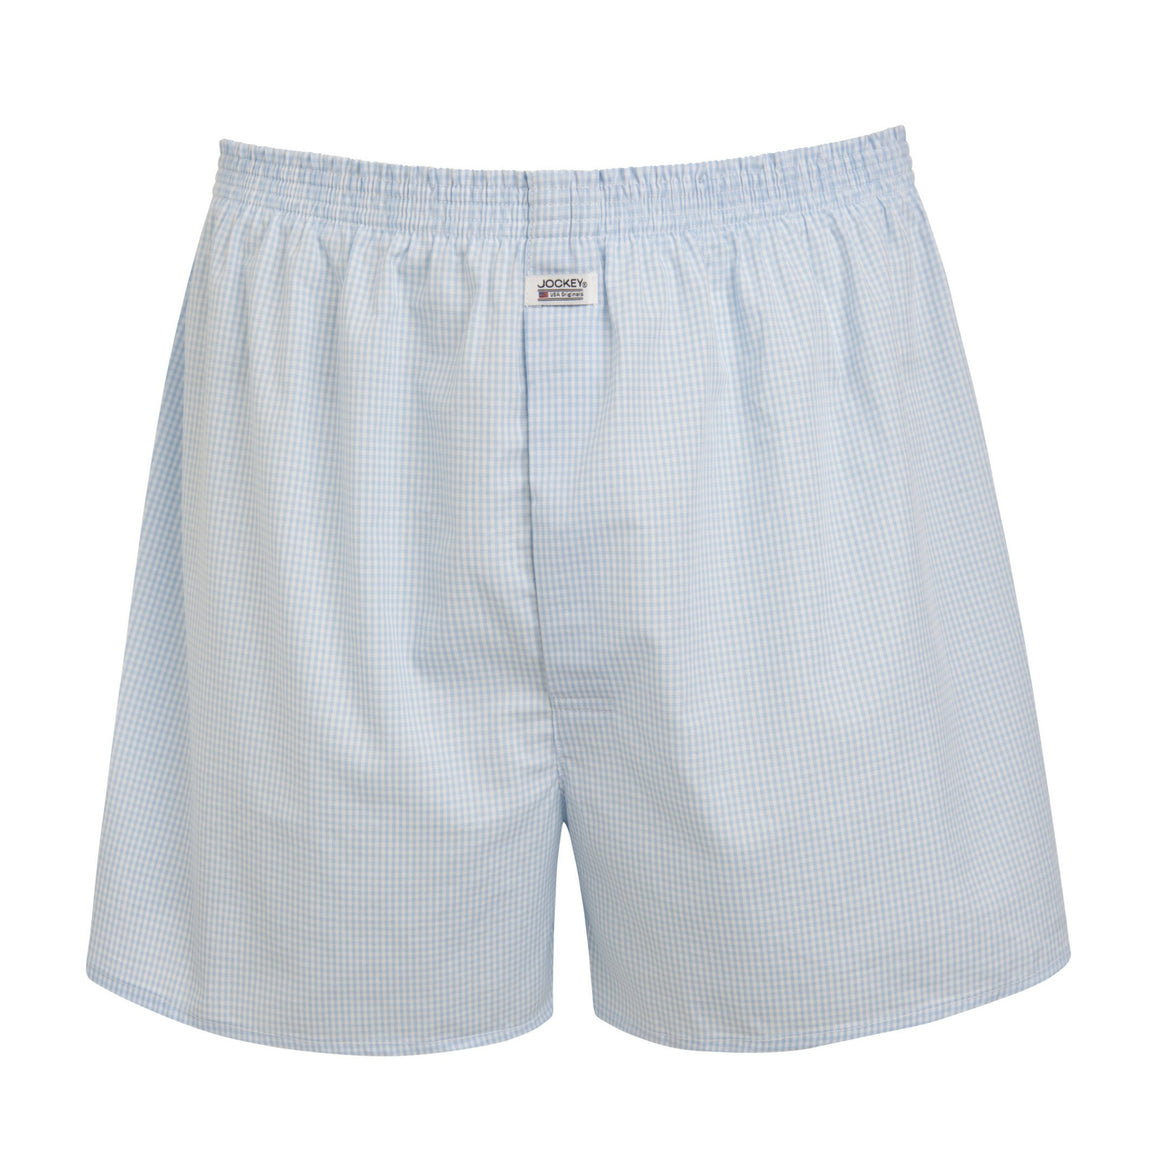 Check Woven Single Boxer Short for Men in Shirting Blue